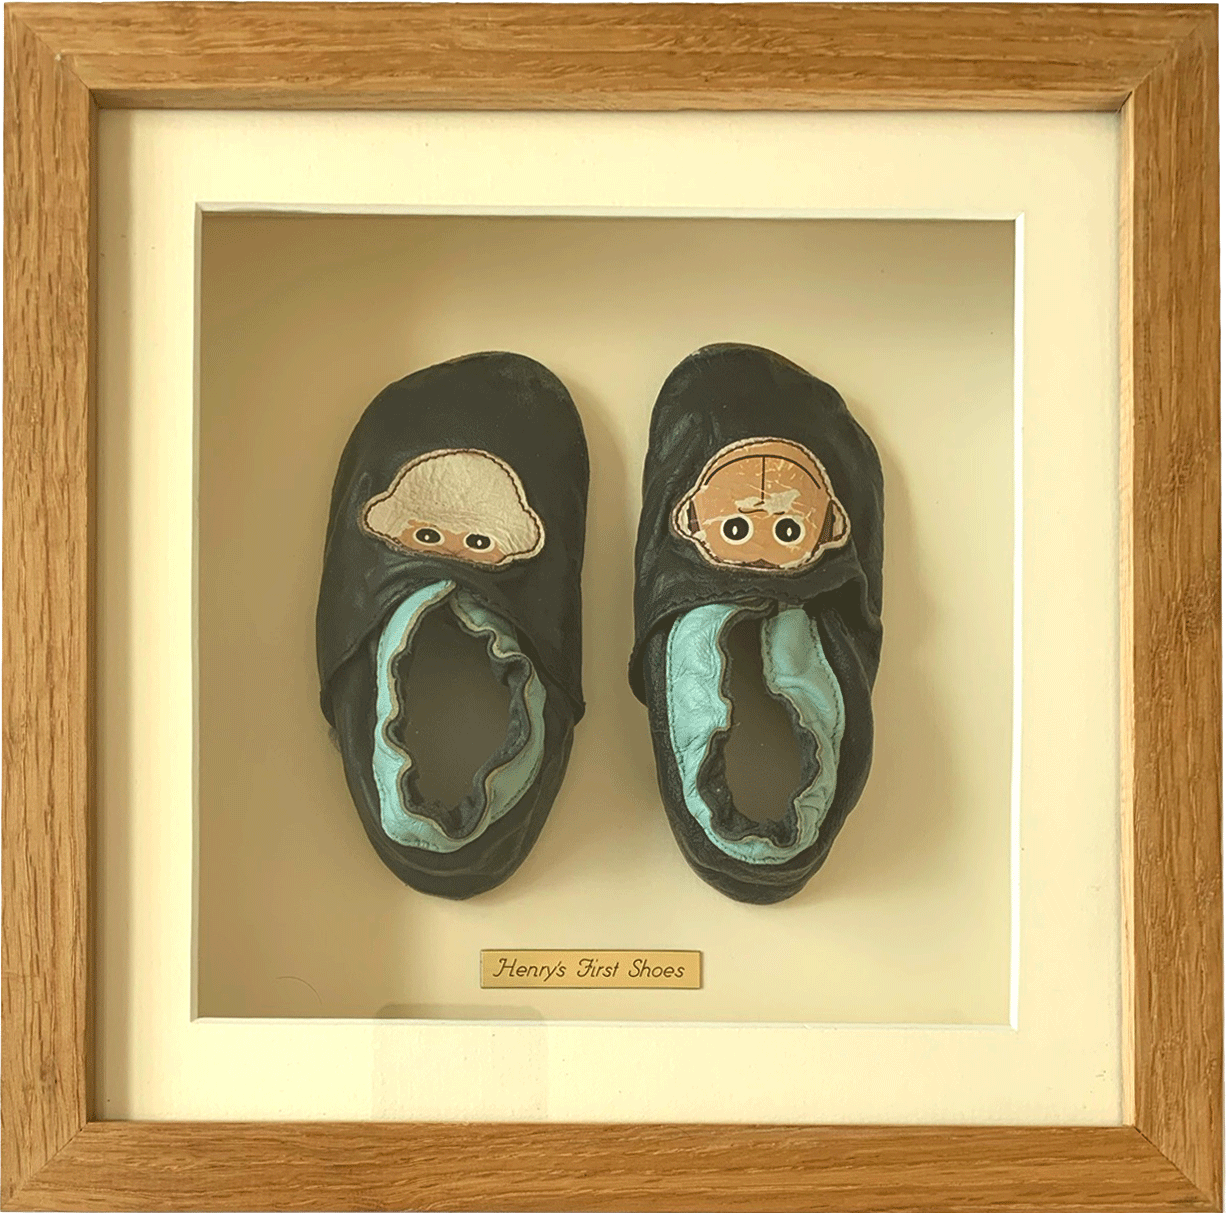 Baby's first slippers in box frame